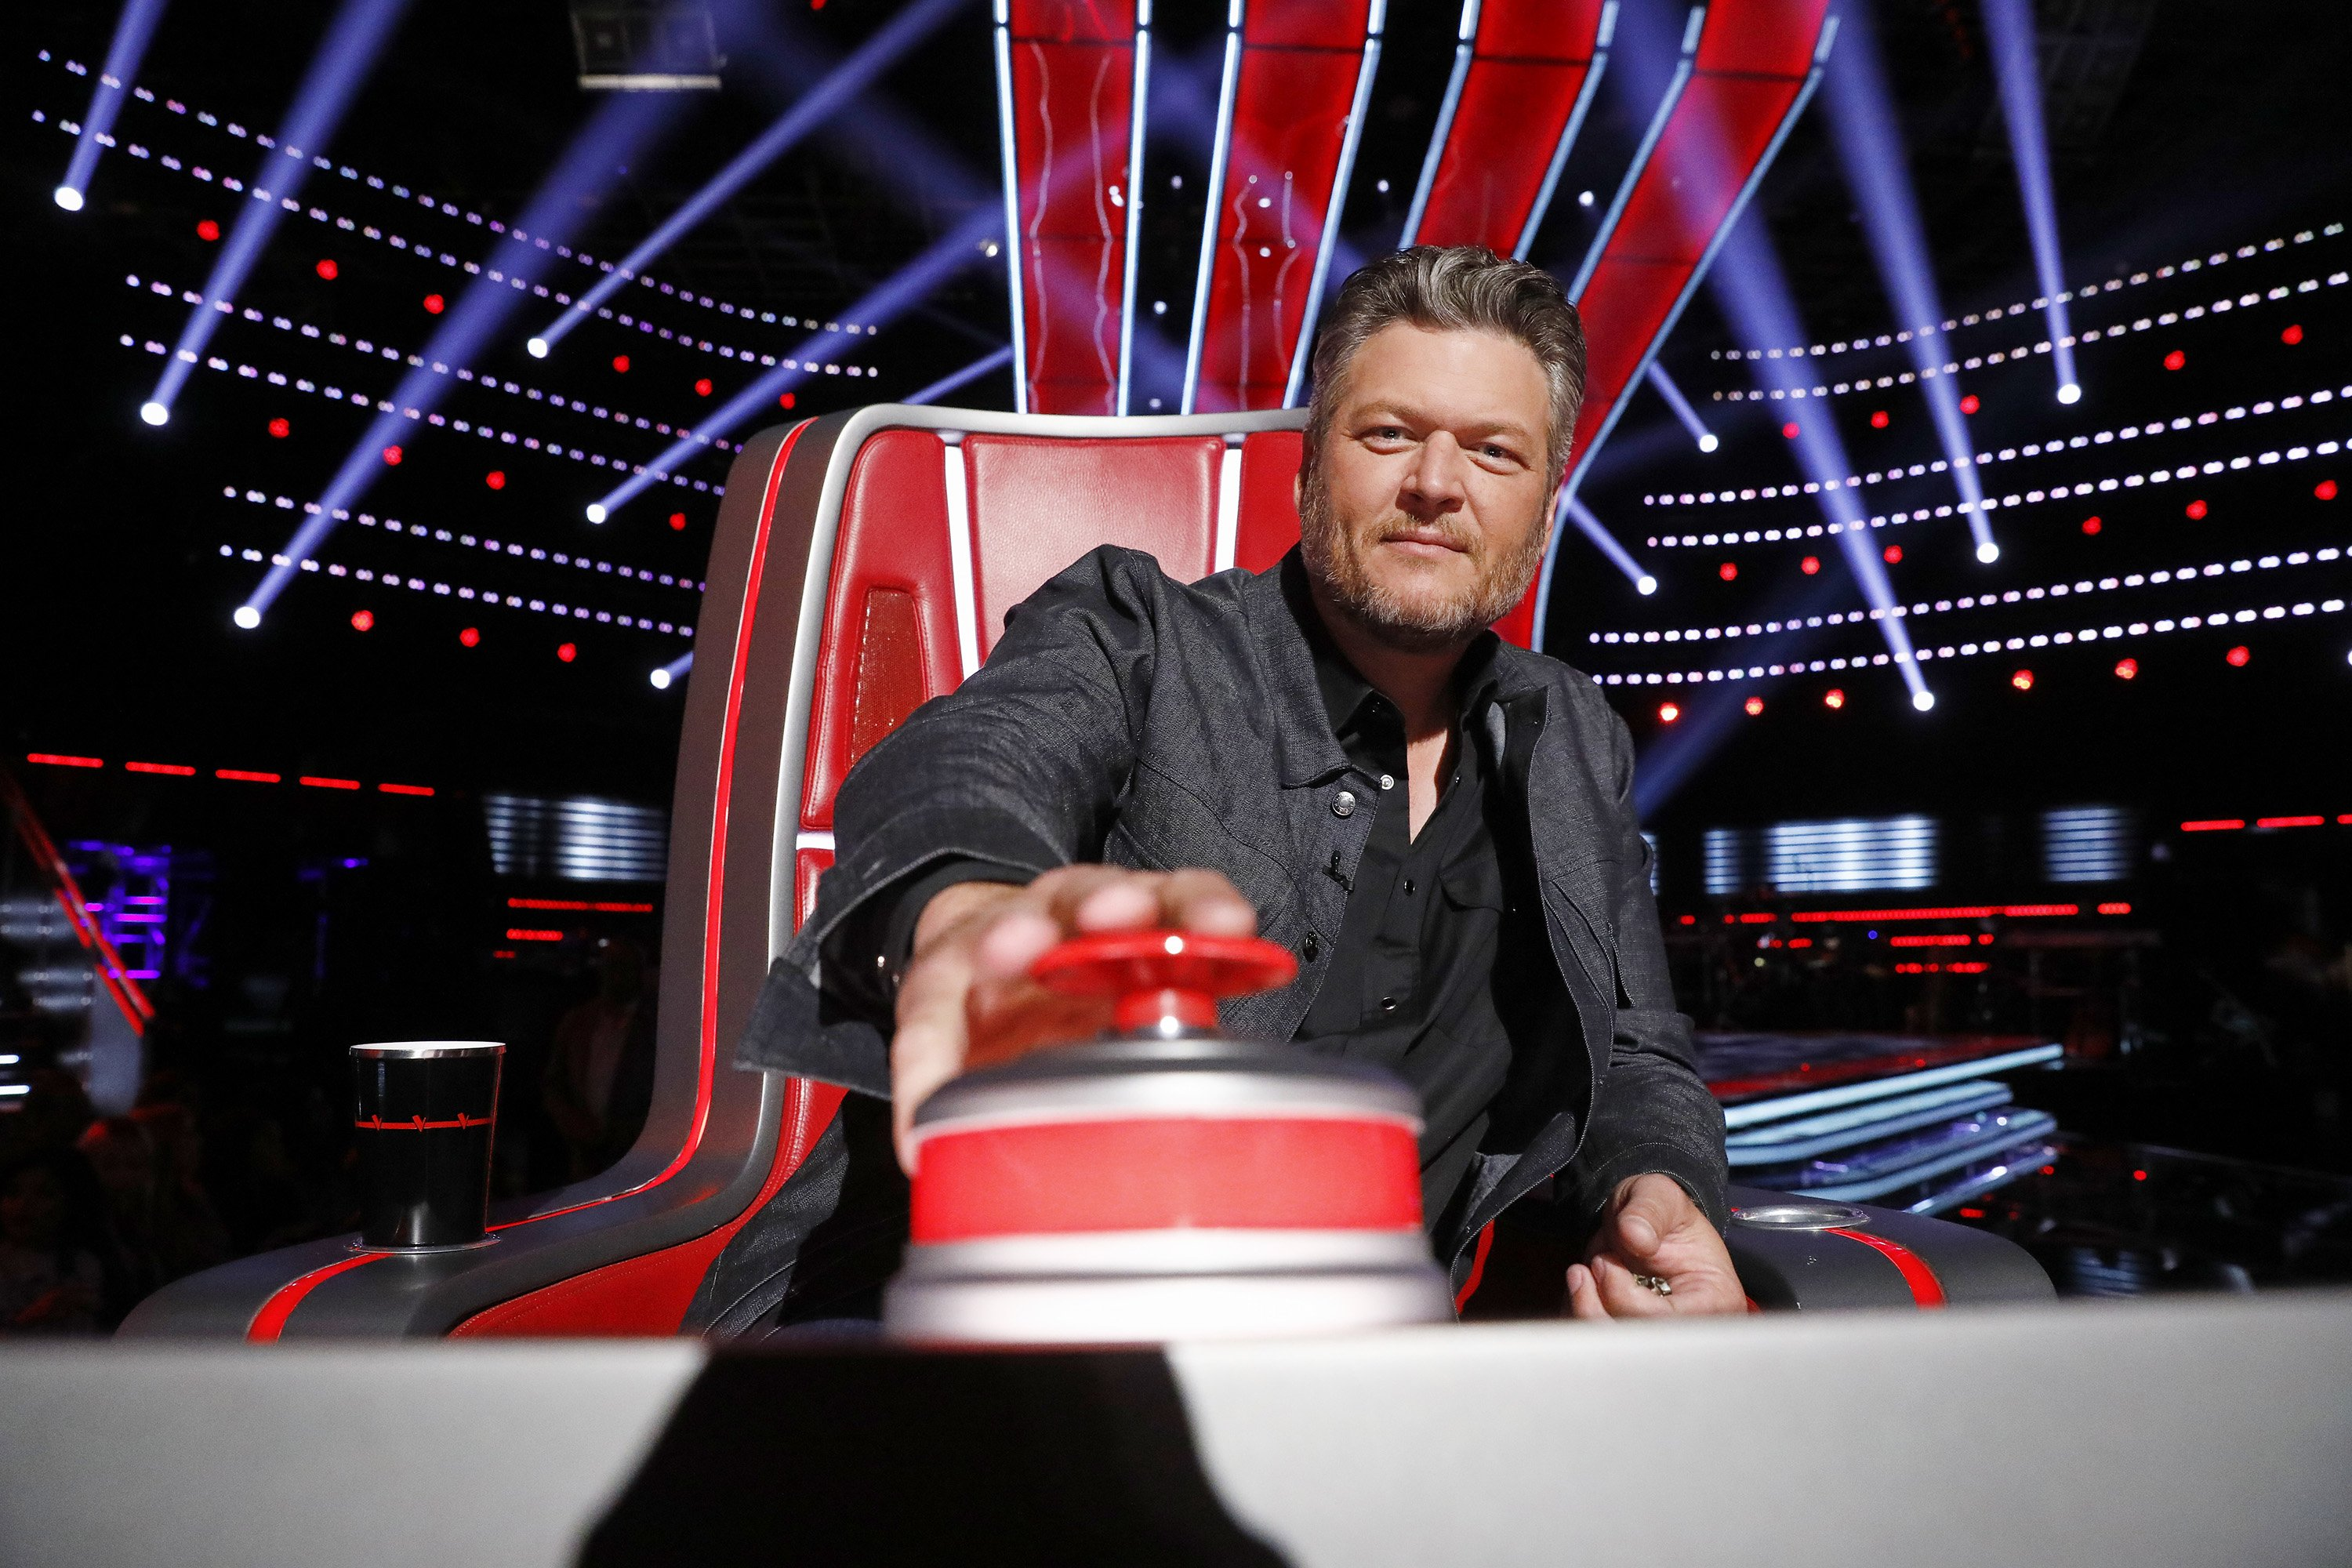 """Blake Shelton during the Blind Auditions on Season 18 of """"The Voice."""" 